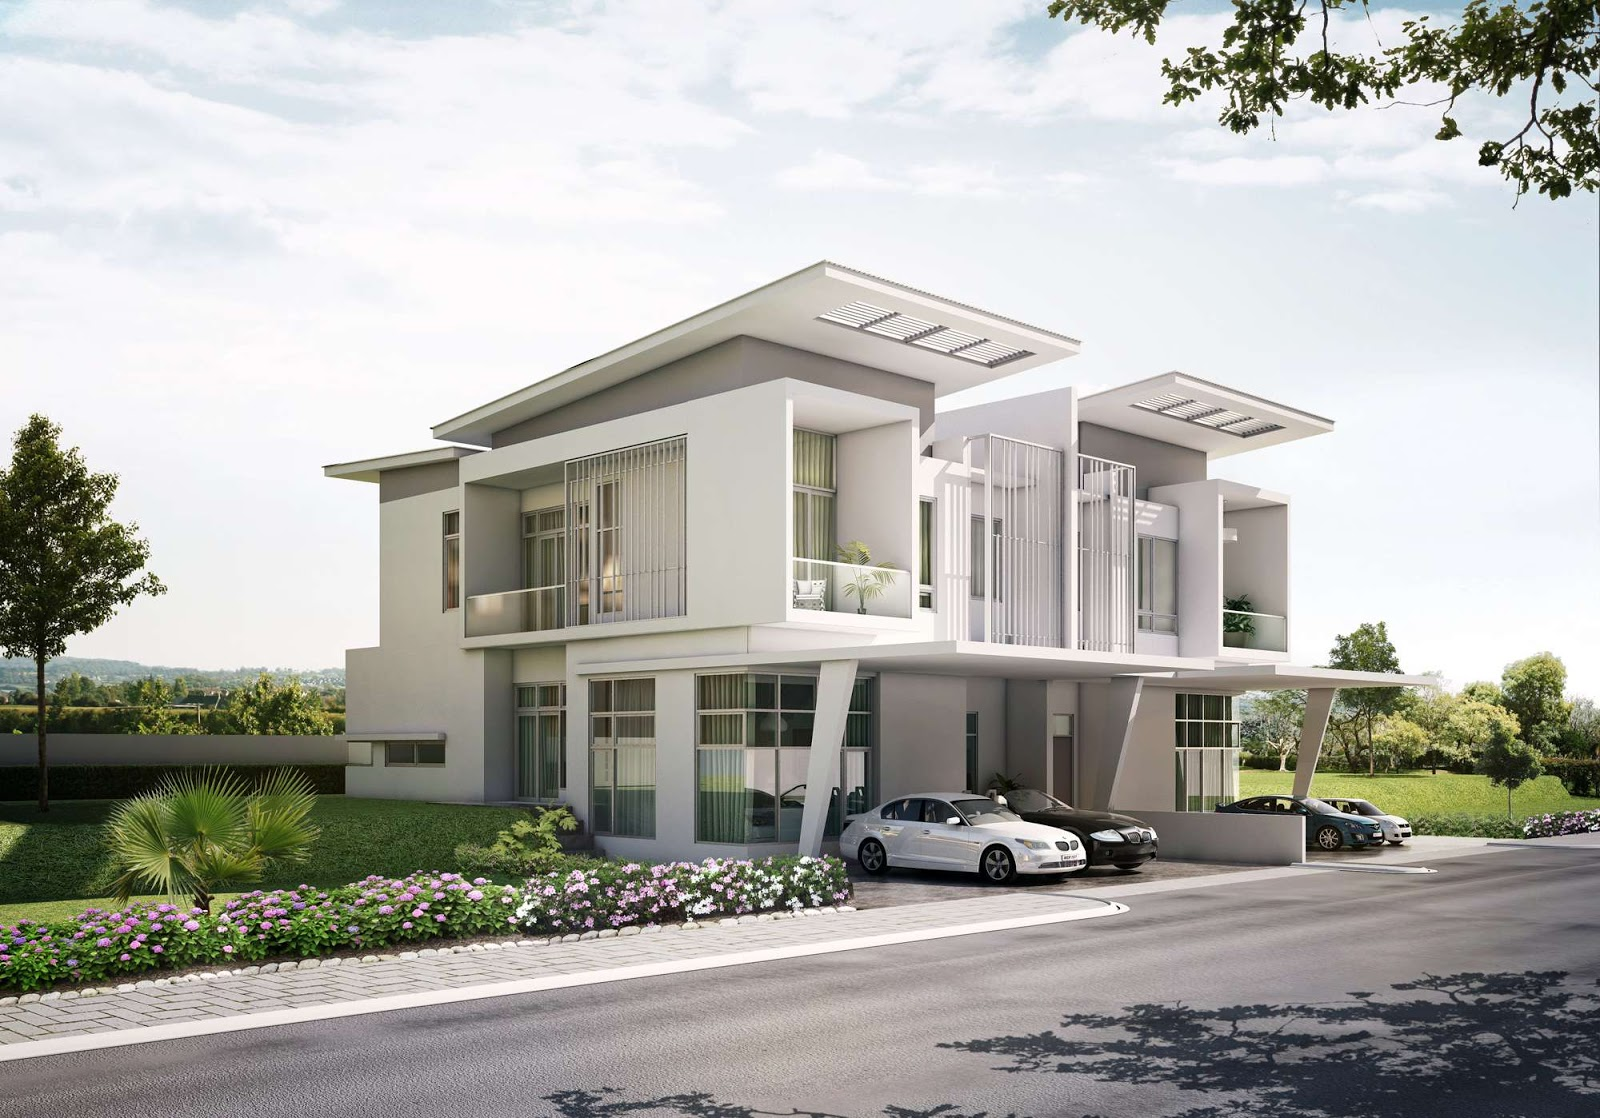 New home designs latest.: Singapore modern homes exterior designs.